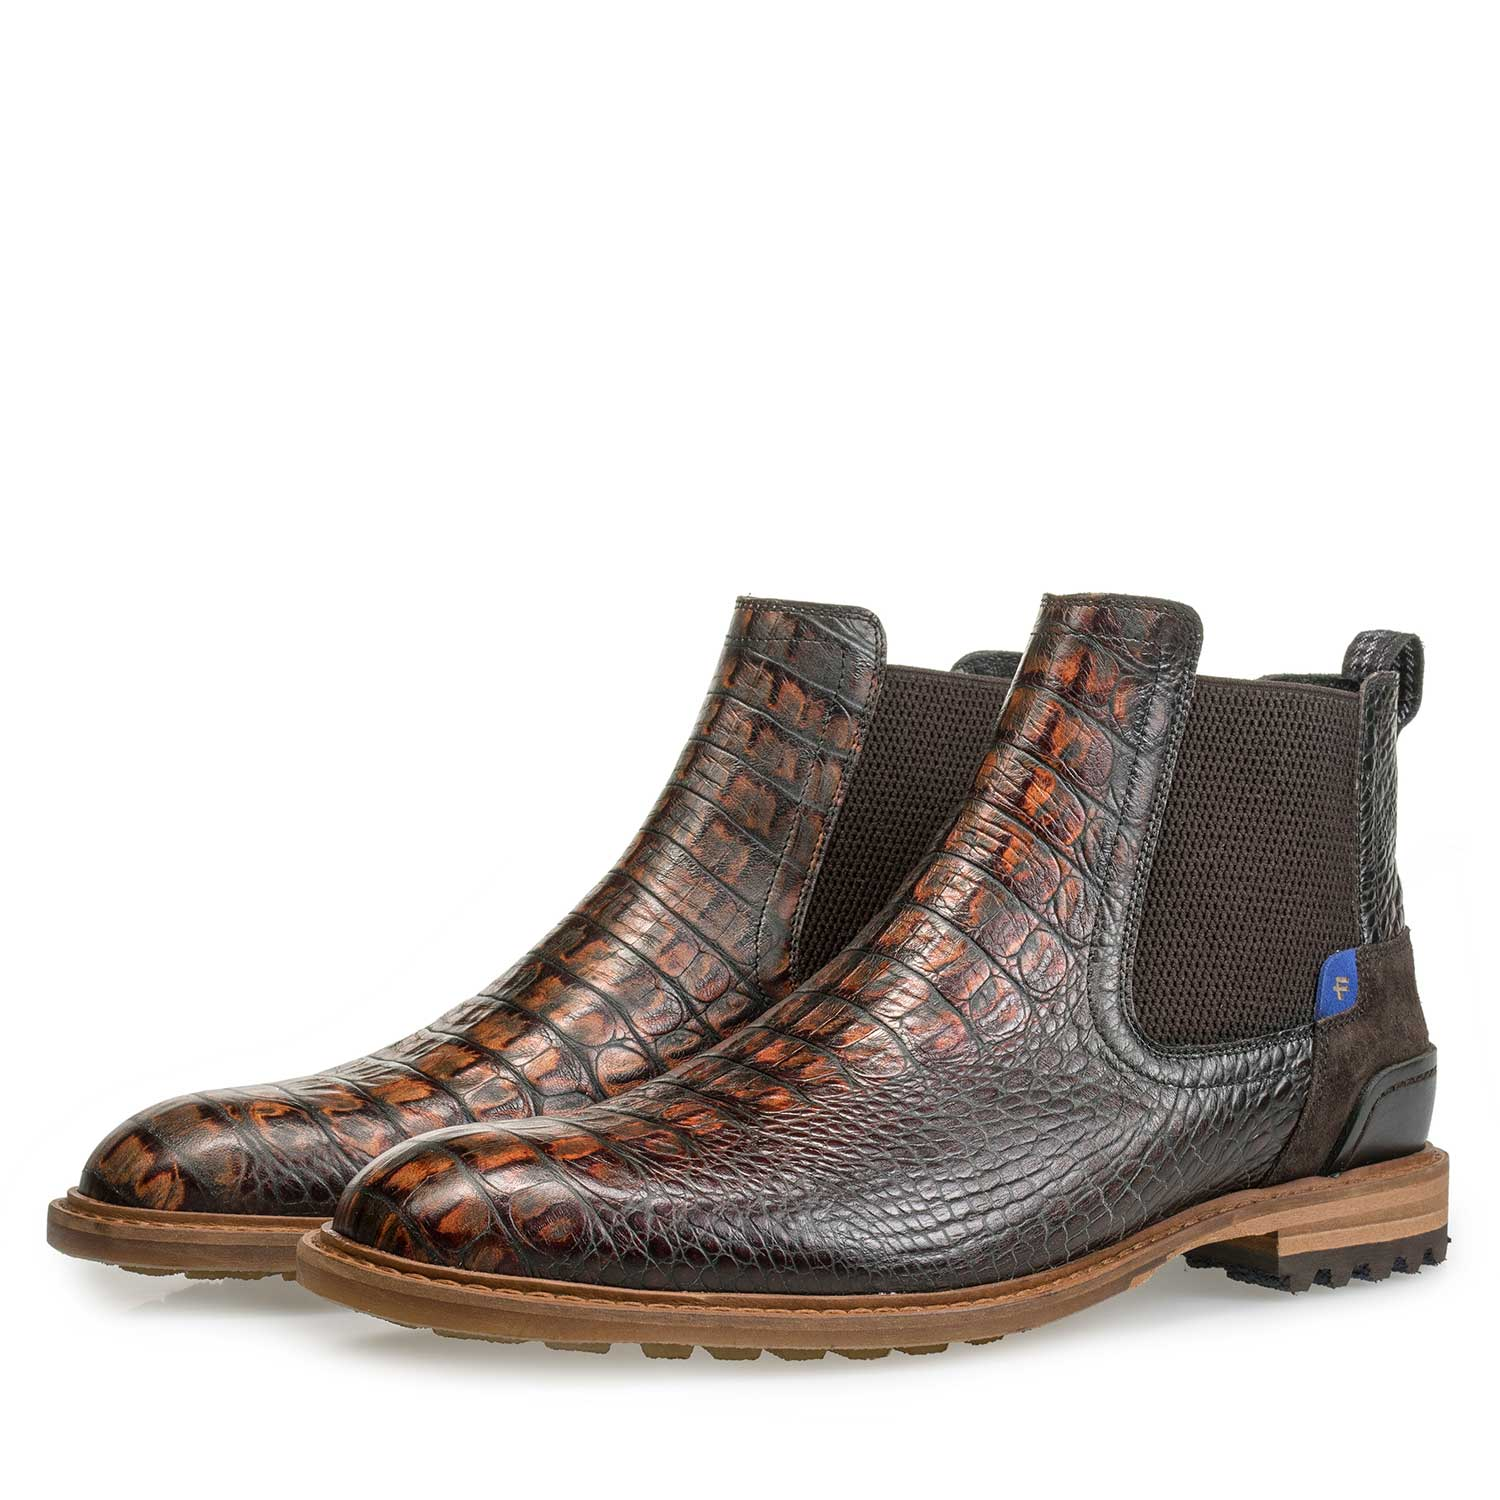 10230/12 - Brown calf's leather Chelsea boot with croco print